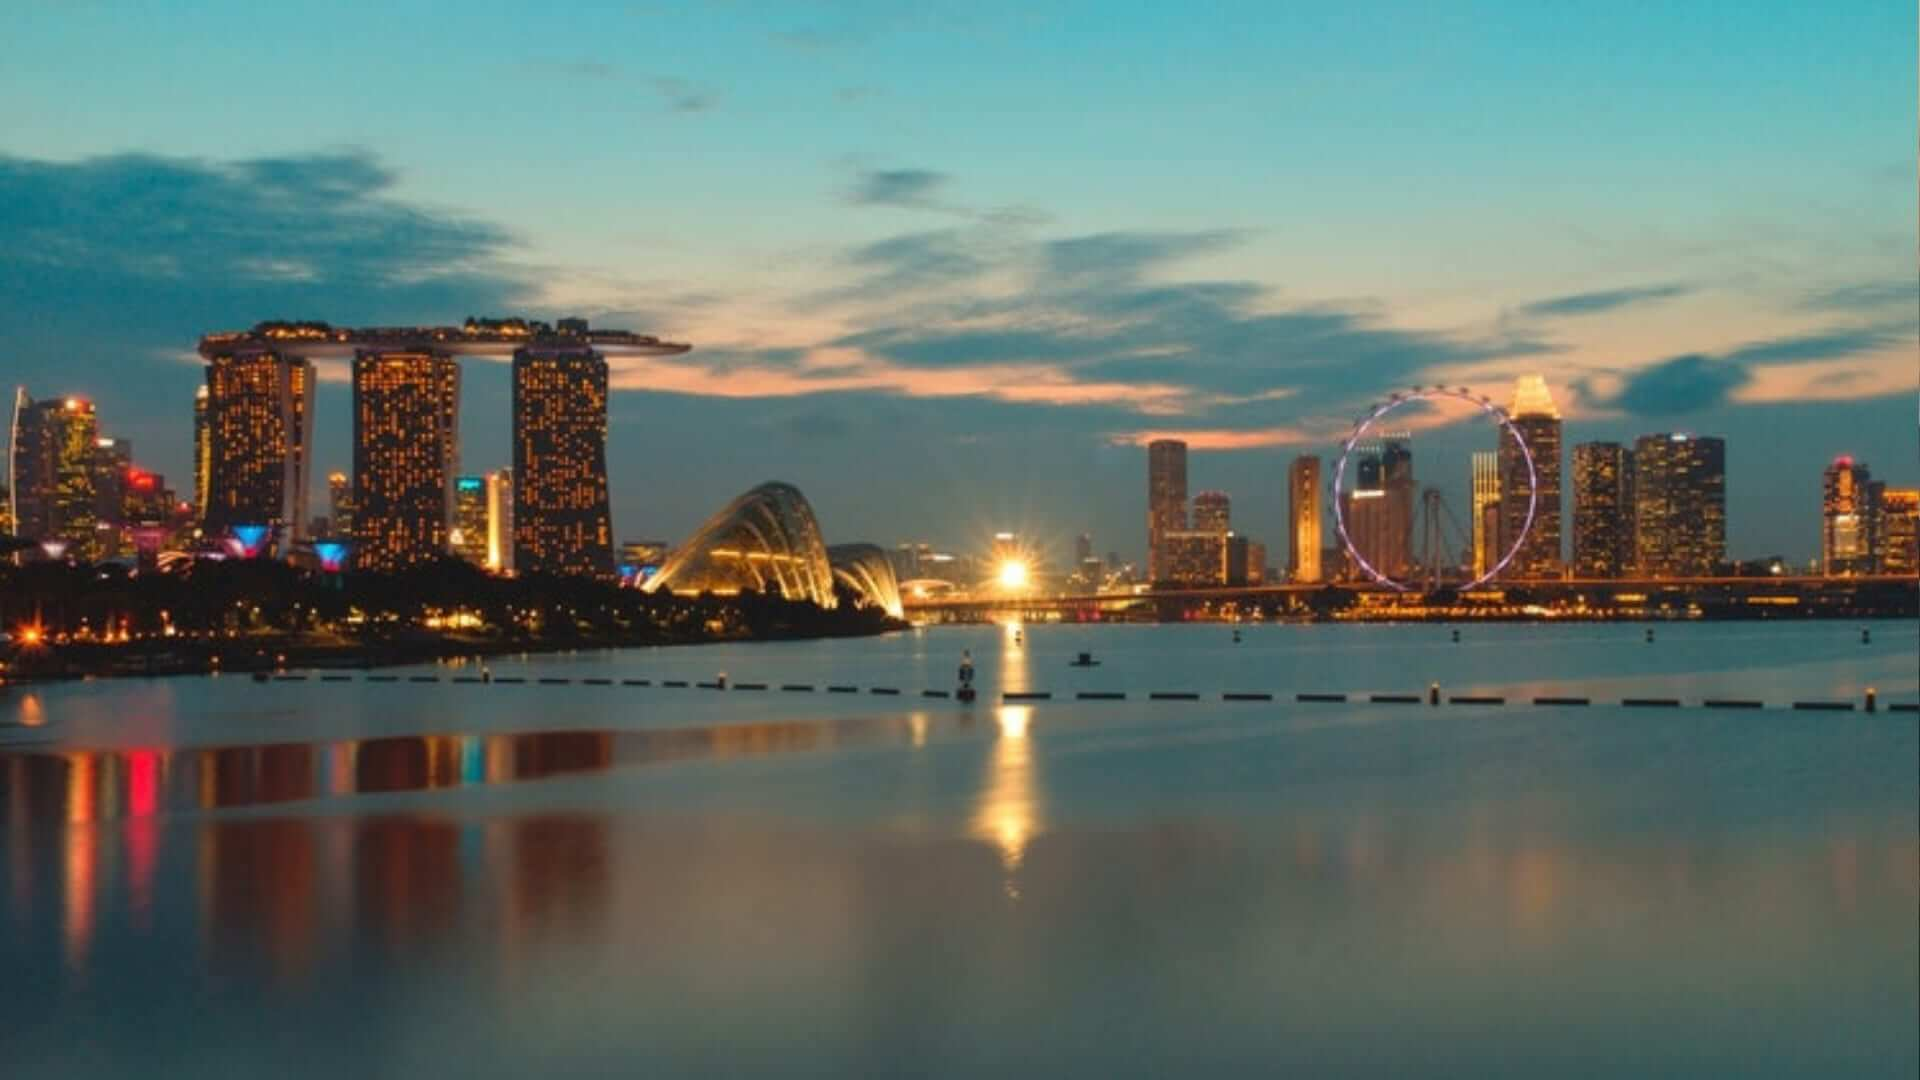 A picture of a bay surrounded by illuminated buildings during the evening in Singapore.